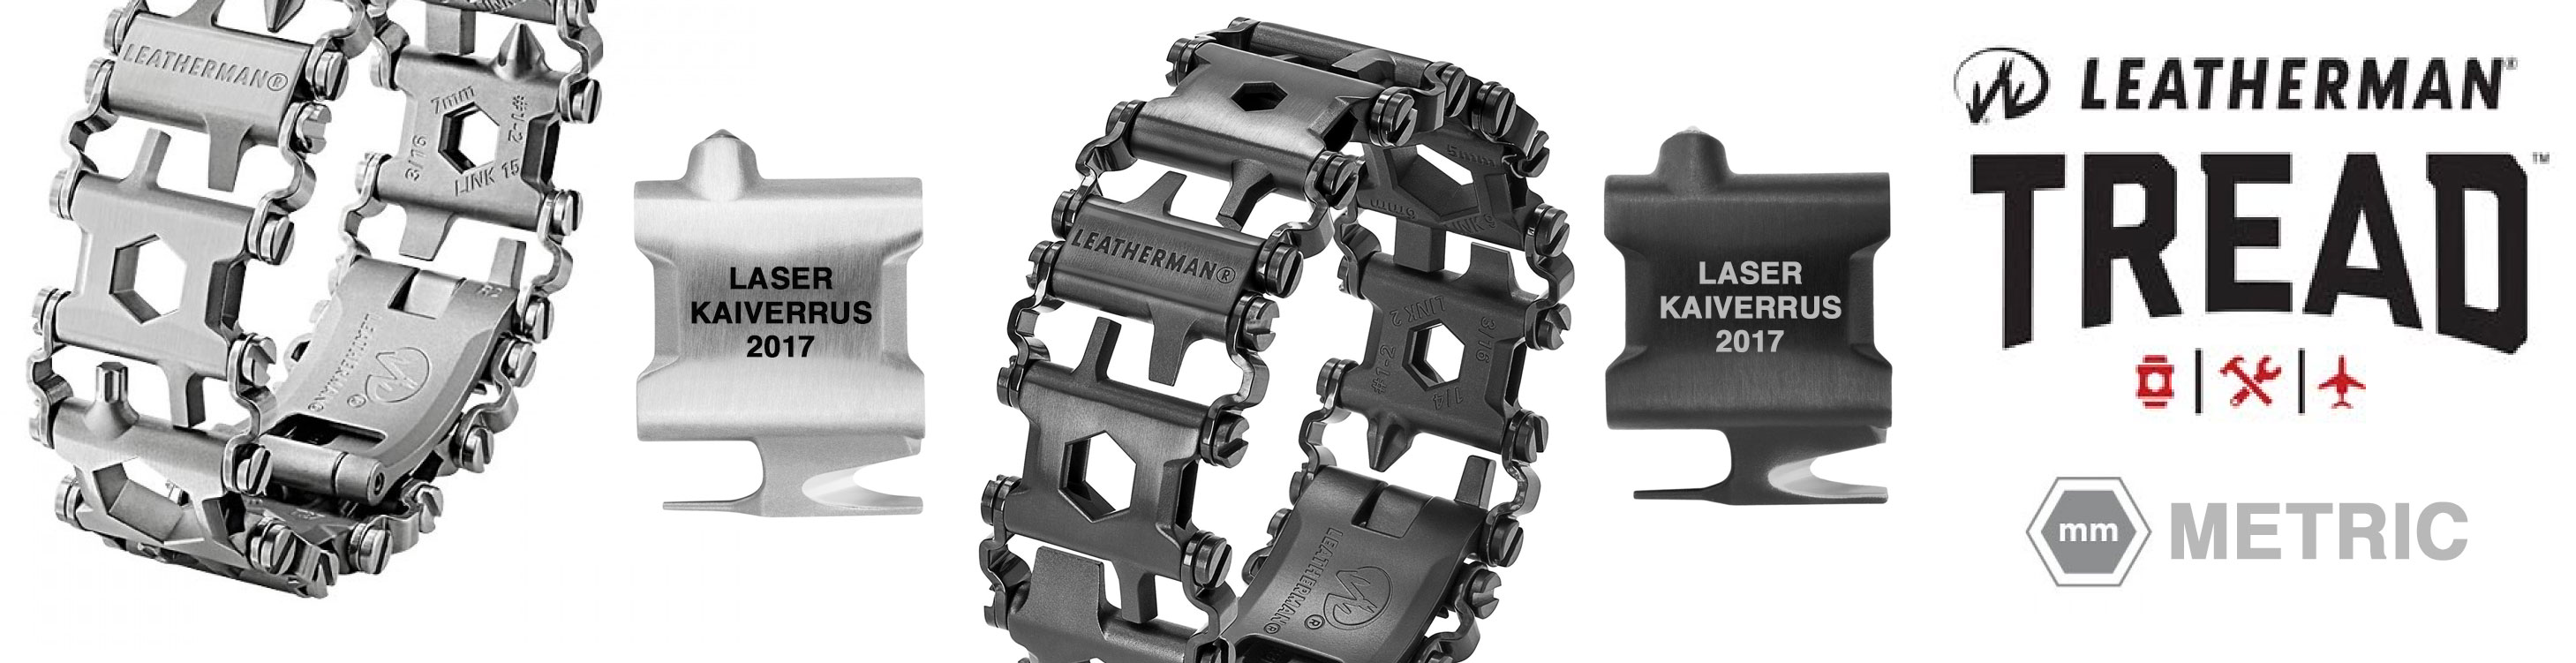 Leatherman Tread ranneke